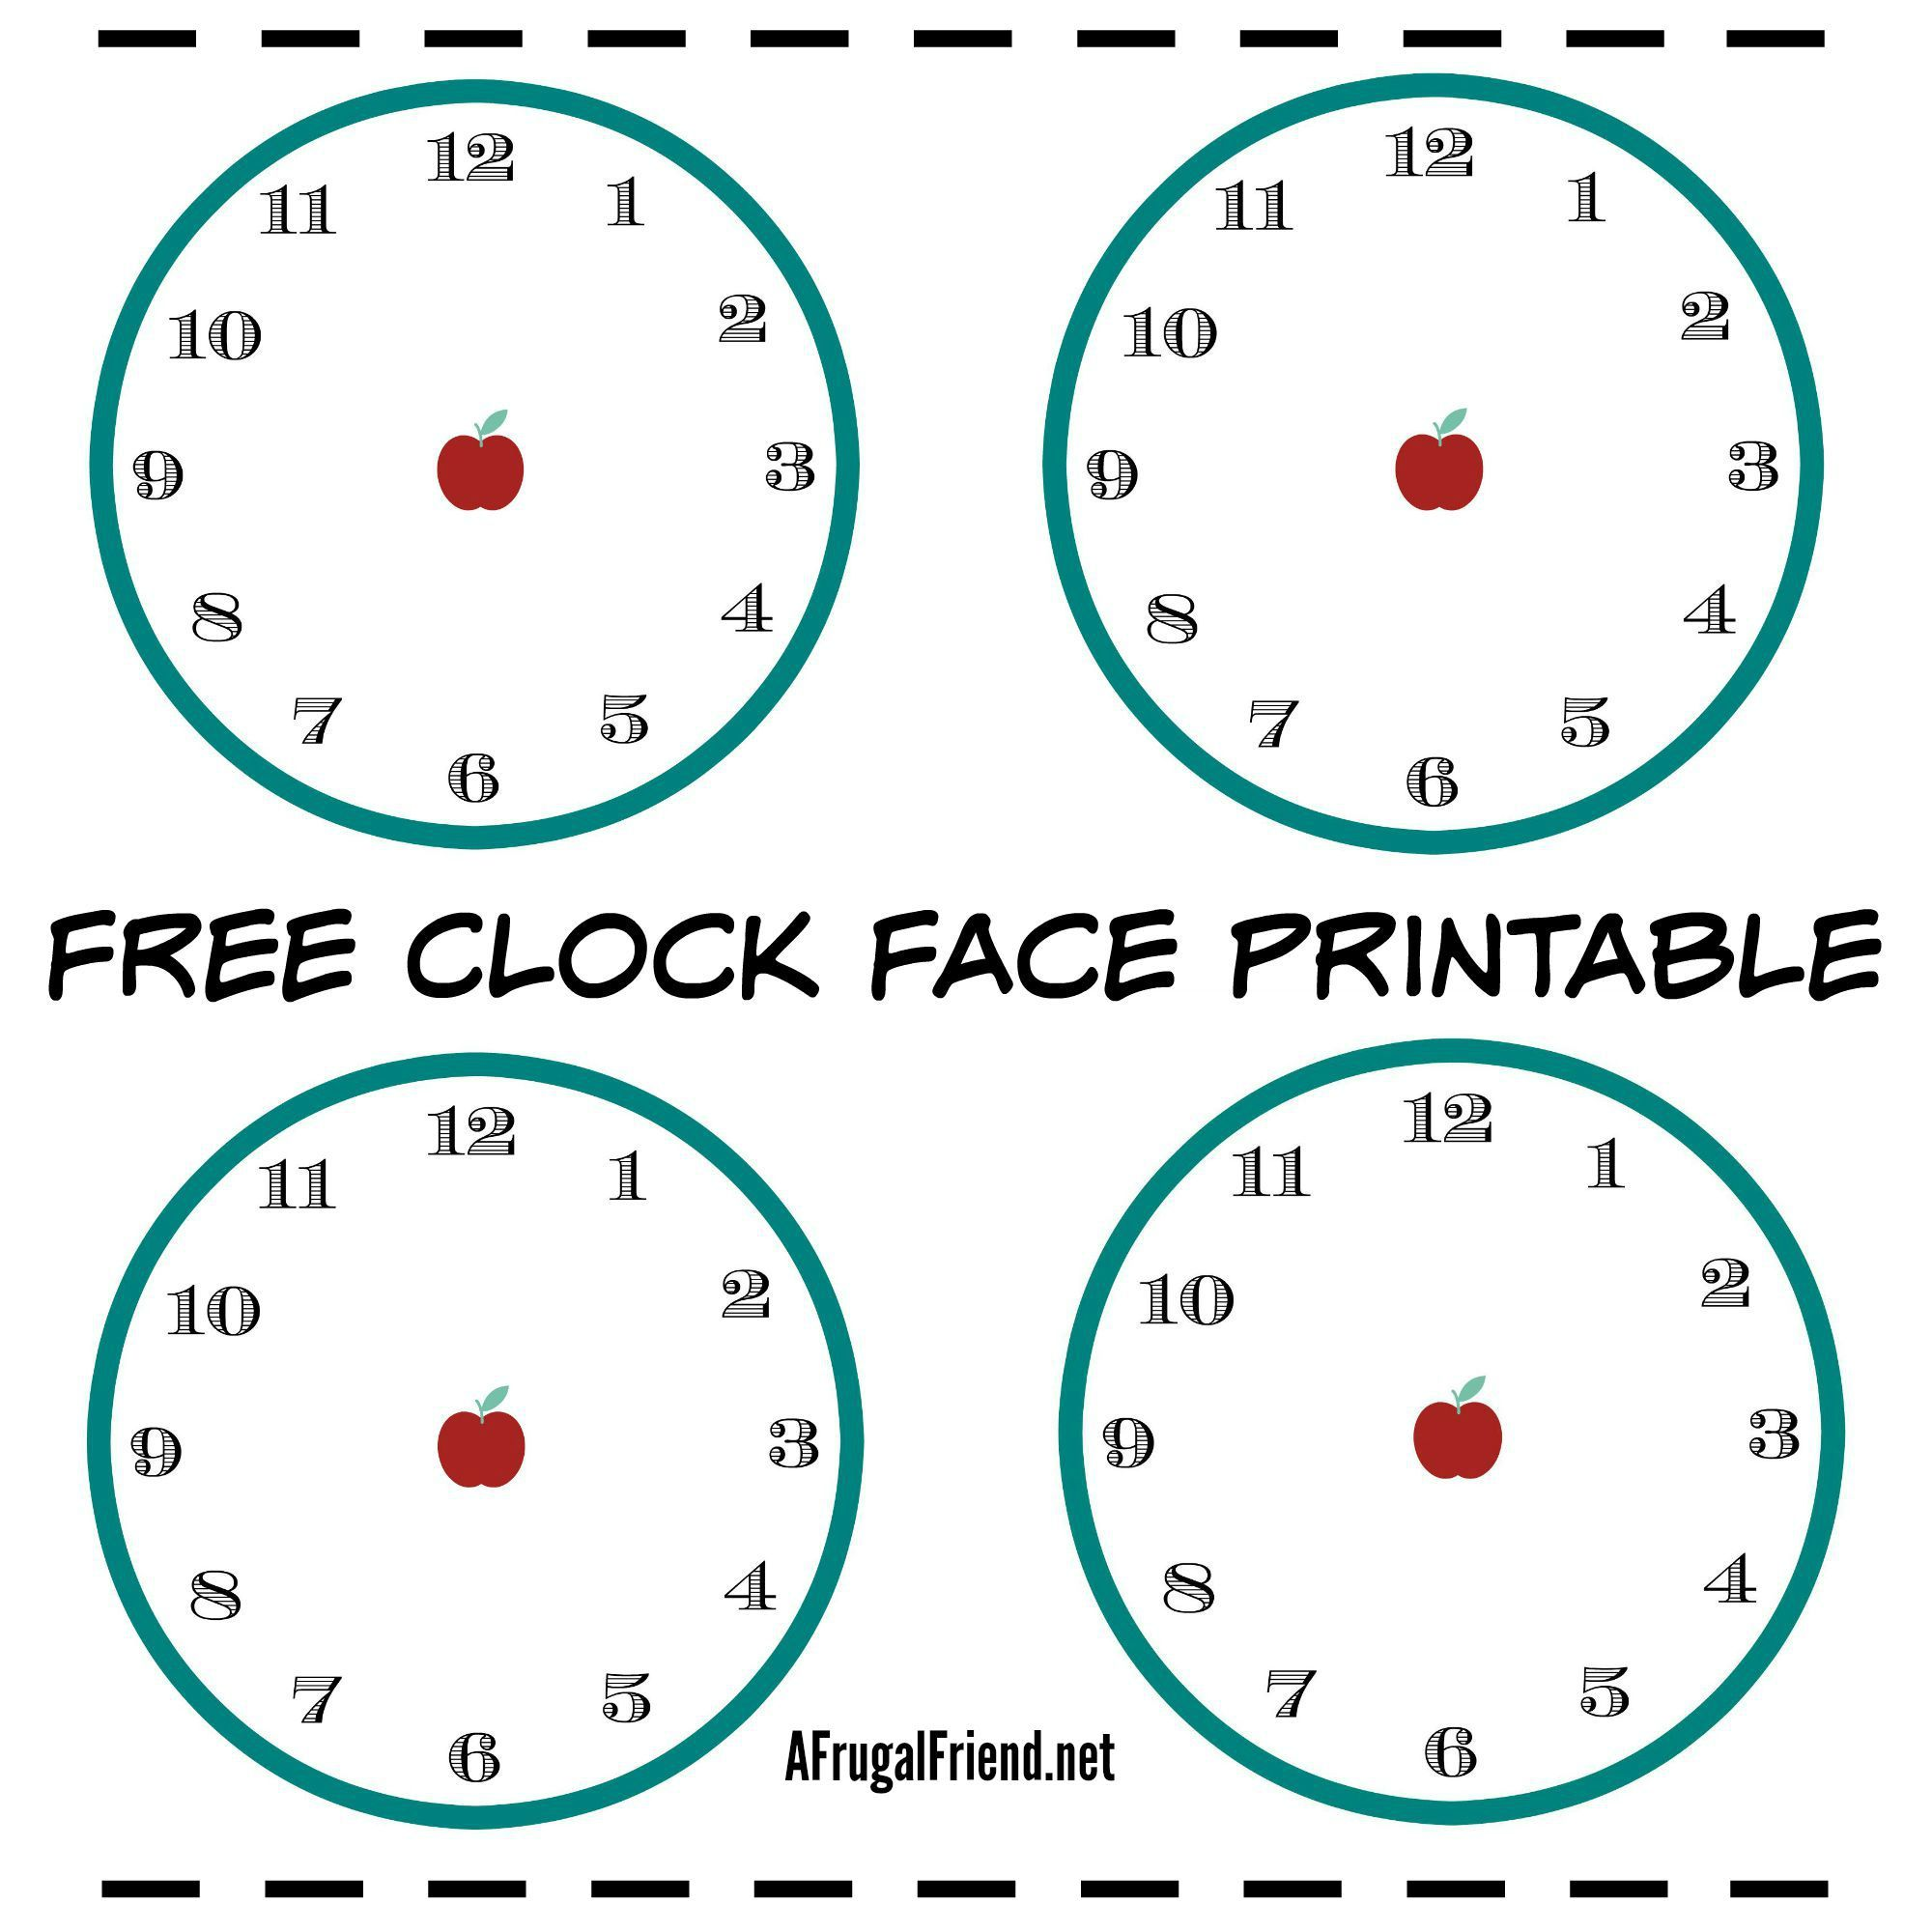 Free Clock Face Printable With A Twist For Kids To Help Kids